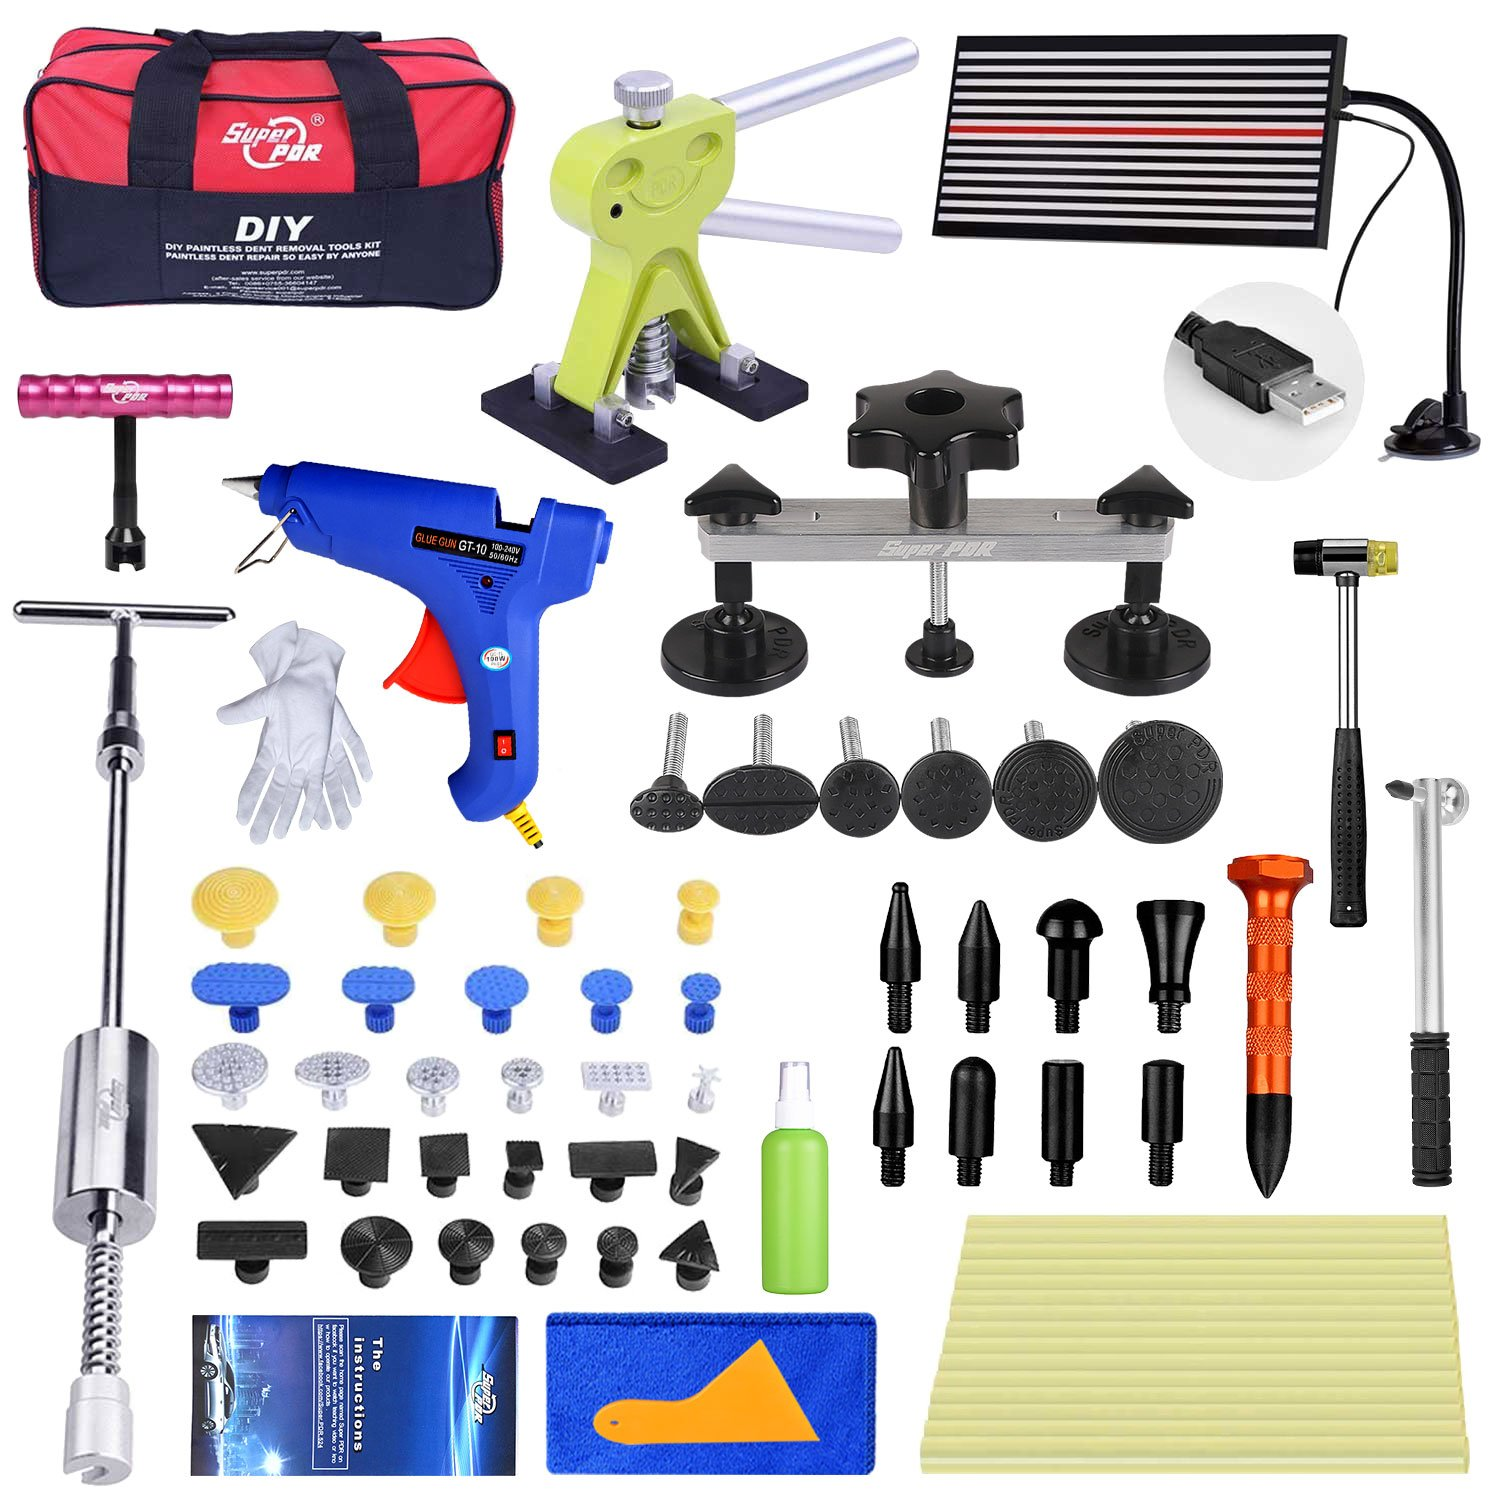 Super PDR 58Pcs NEW Paintless Dent Repair Tools Silver Bridge Puller Green Dent Lifter Auto Body Repair Kits With Hot Melt Glue Gun For Car Hail Damage And Door Dings Repair by Super PDR (Image #1)